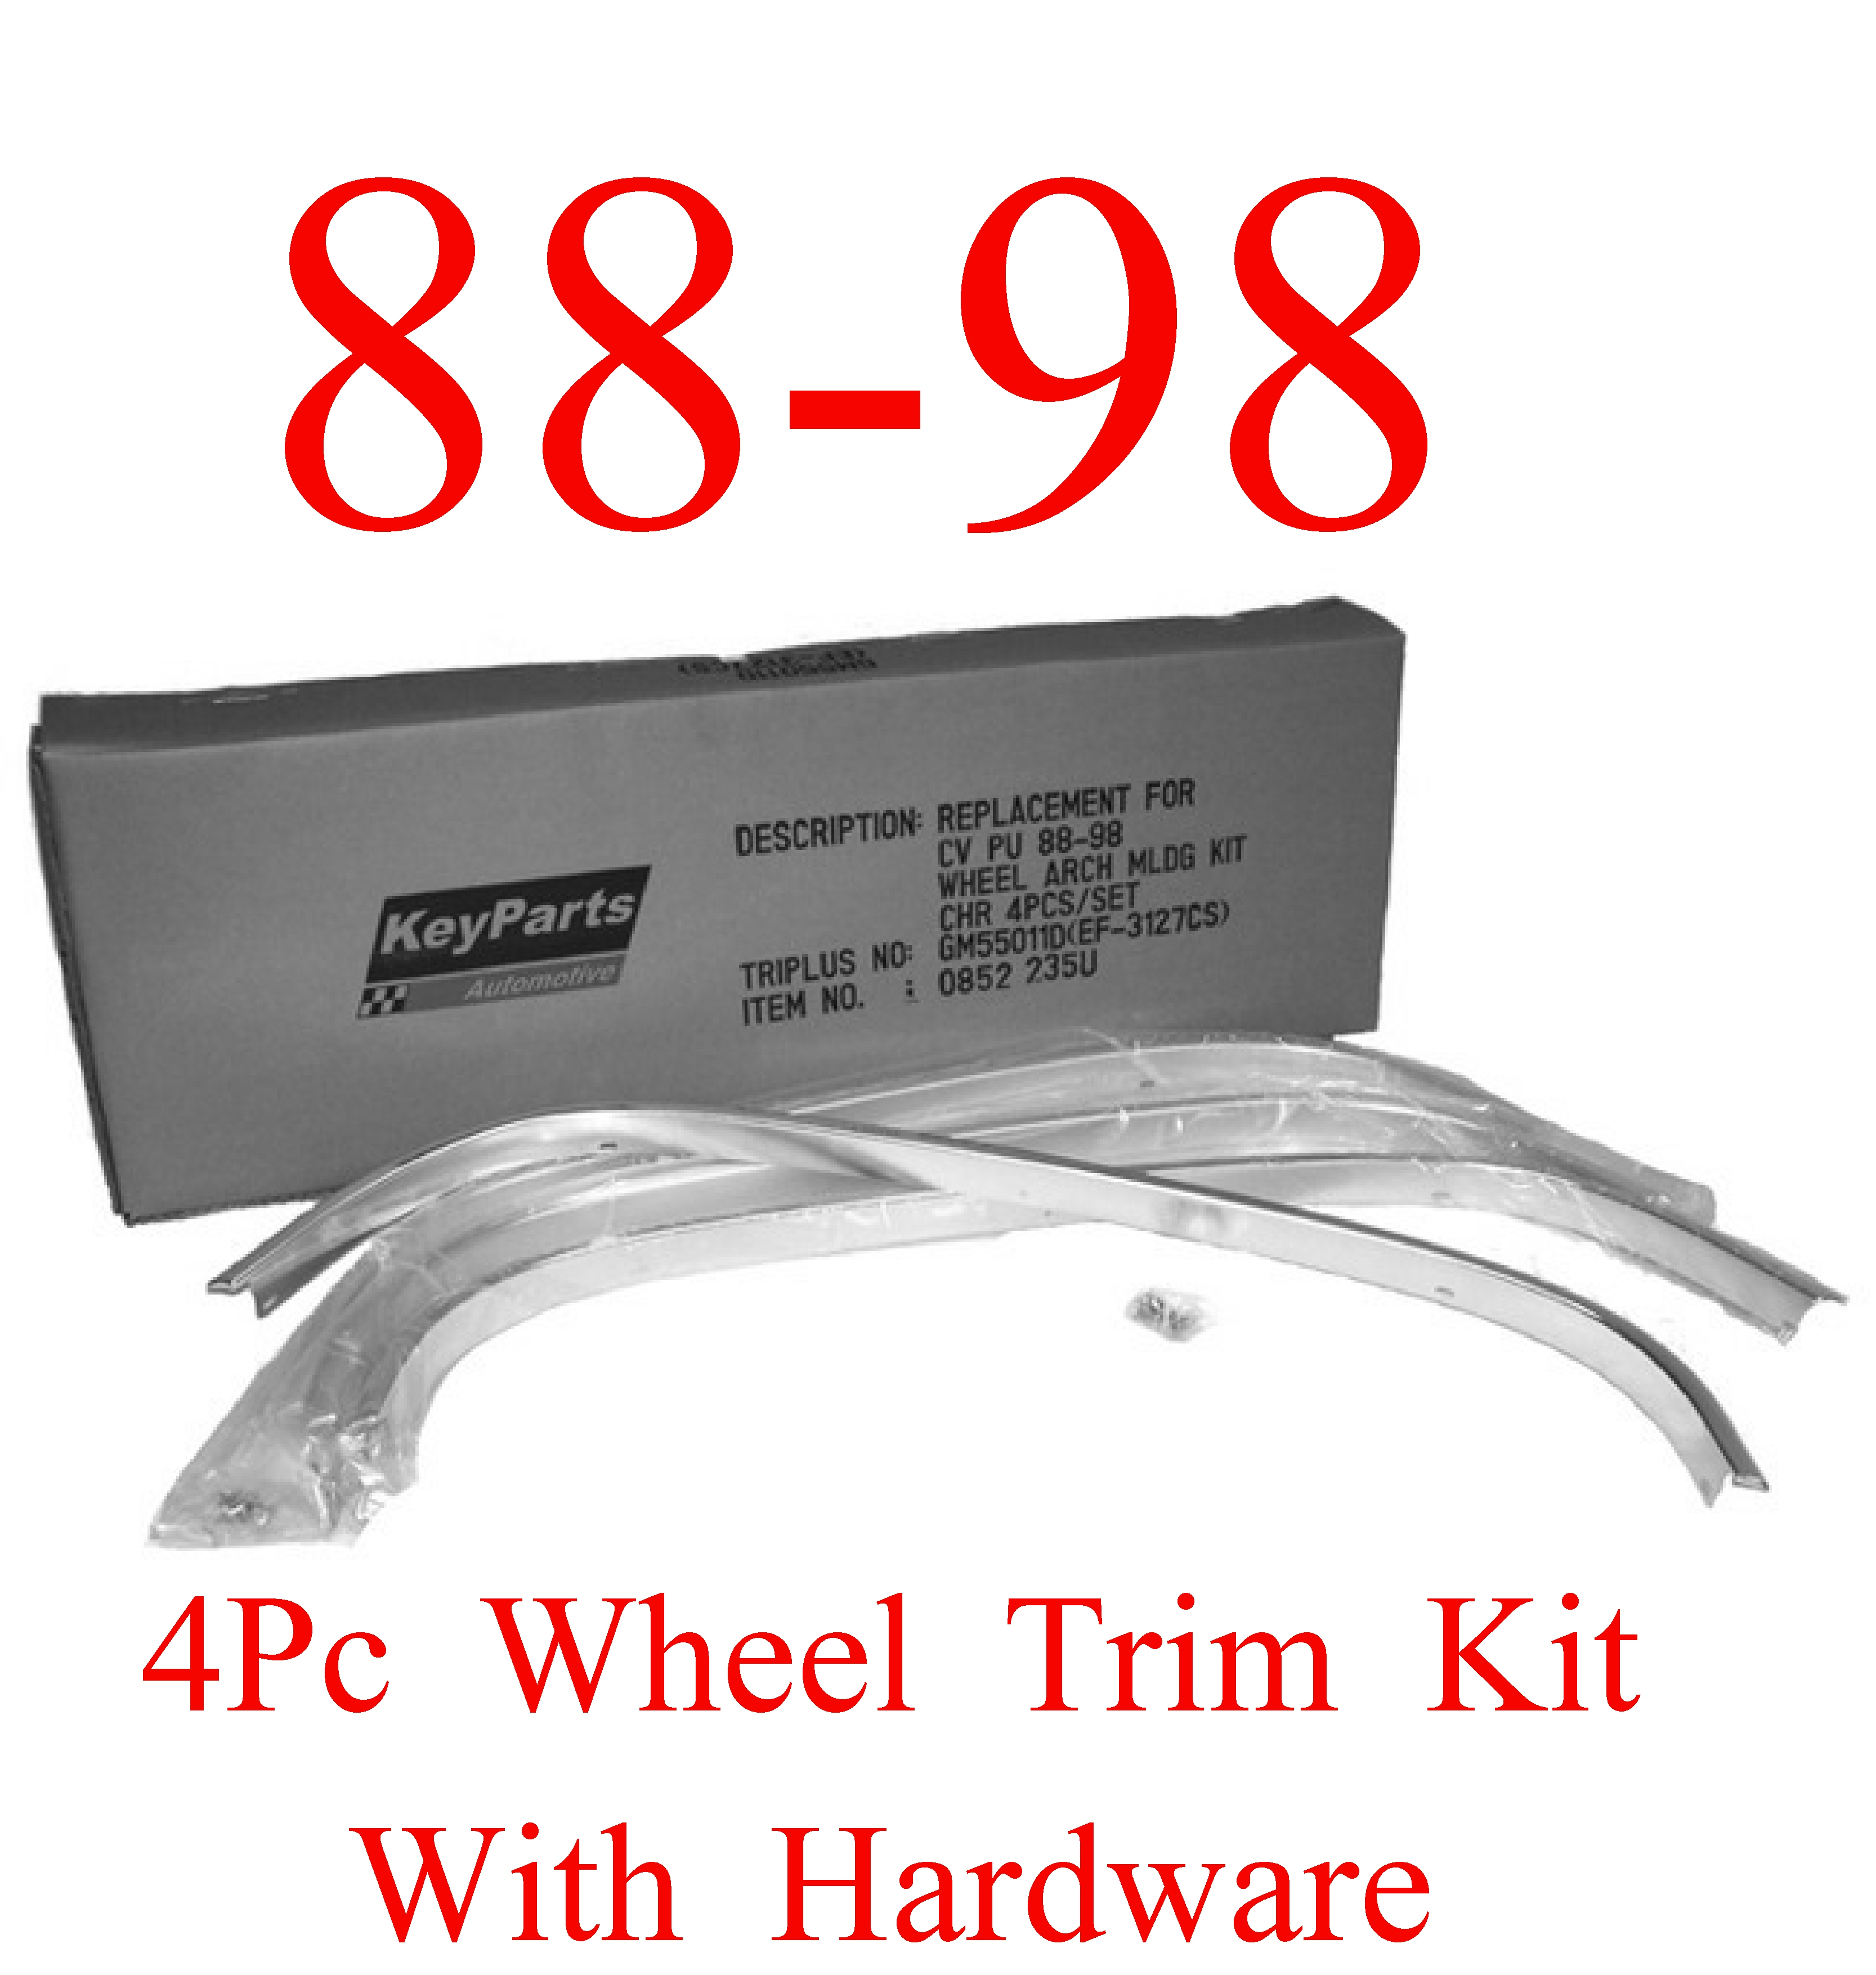 88-98 Chevy GMC 4Pc Wheel Well Trim Kit Chrome